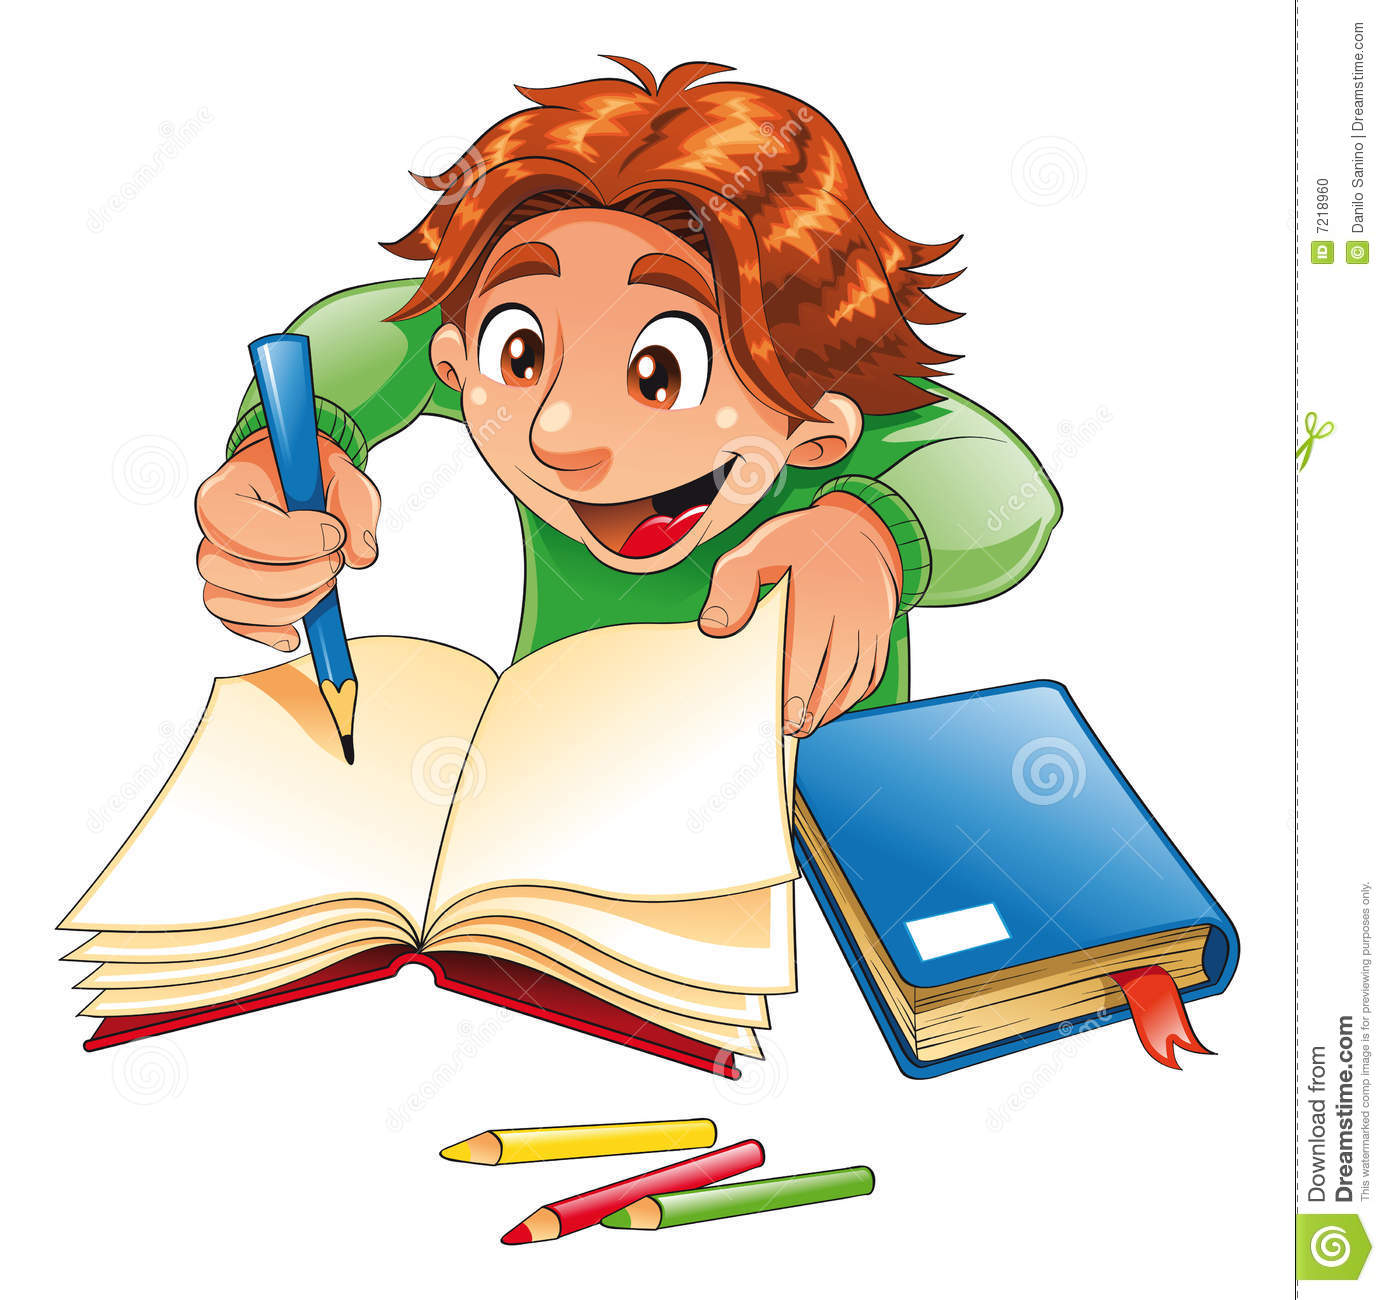 Boy writing and drawing, vector image, software:Illustrator.